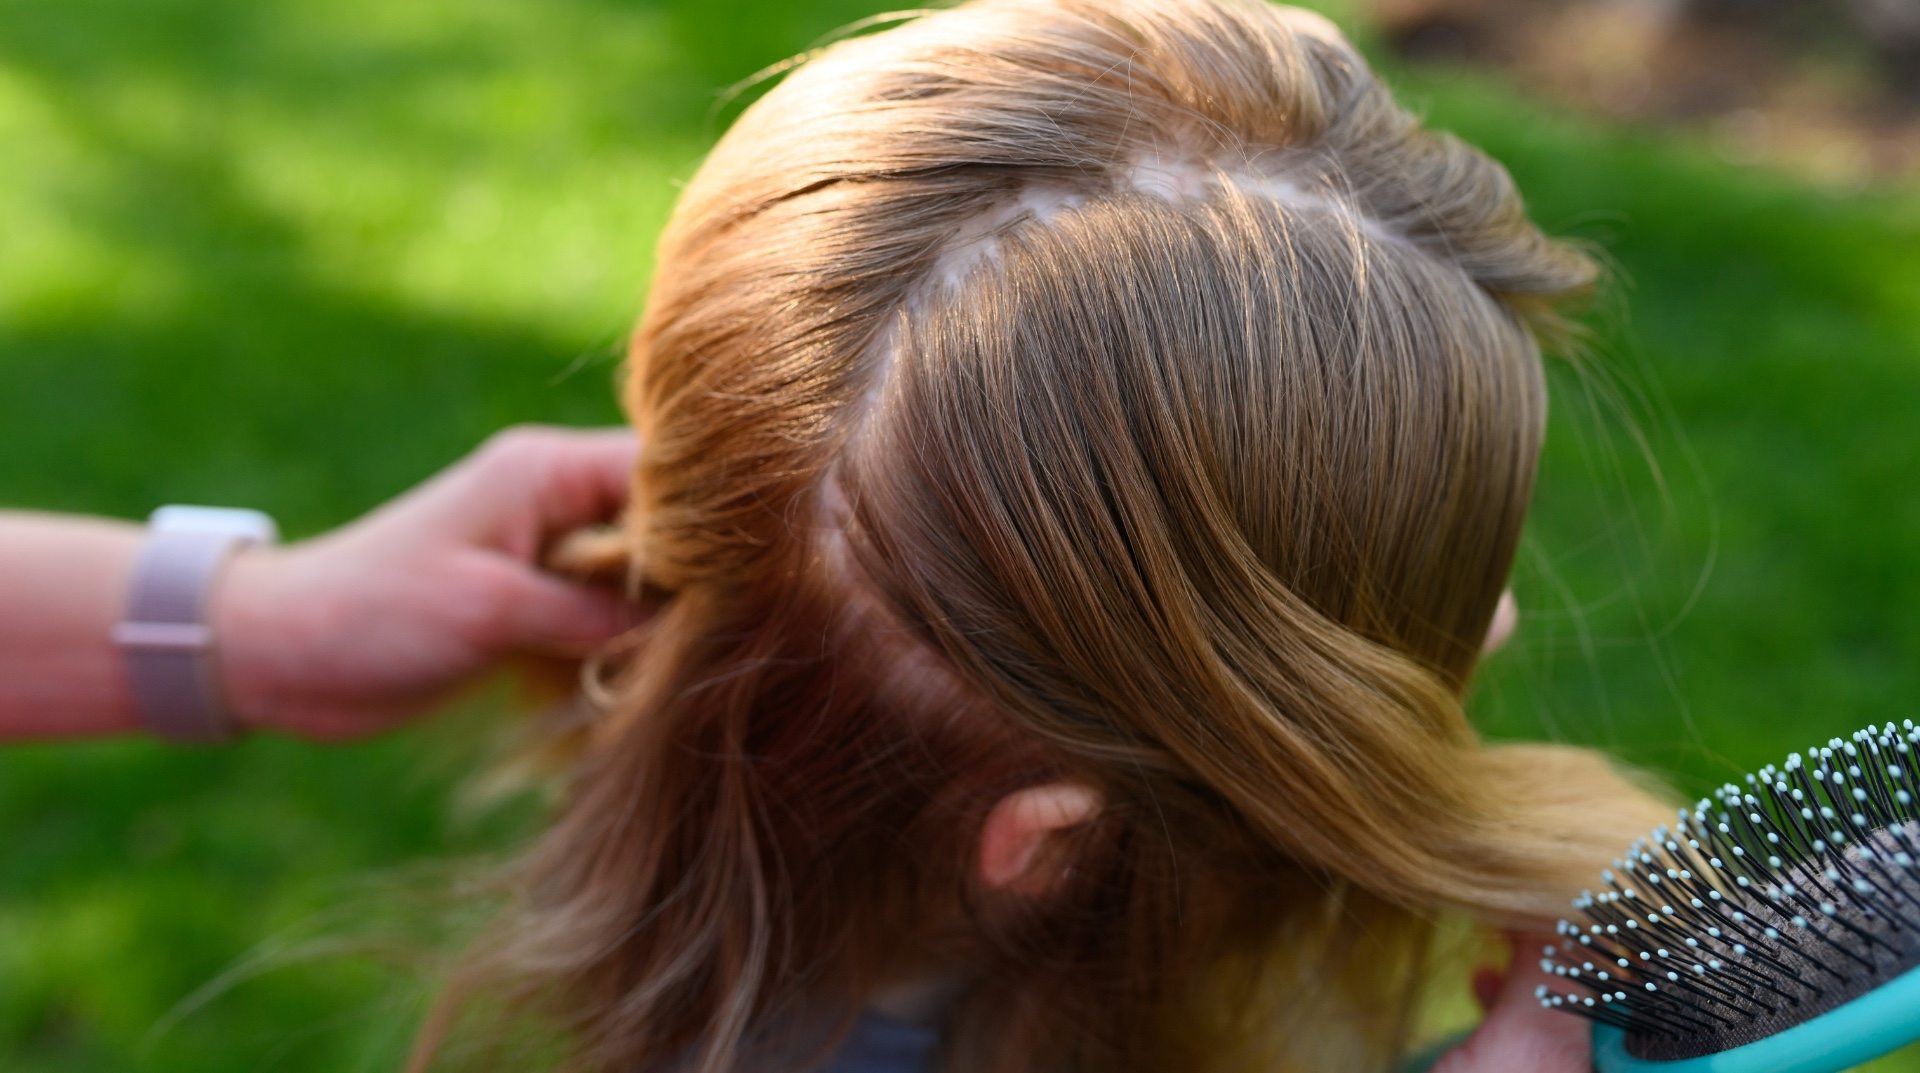 A close-up of Sarah Beth's hair reveals her scar from her surgery, which wraps around one side of her head.